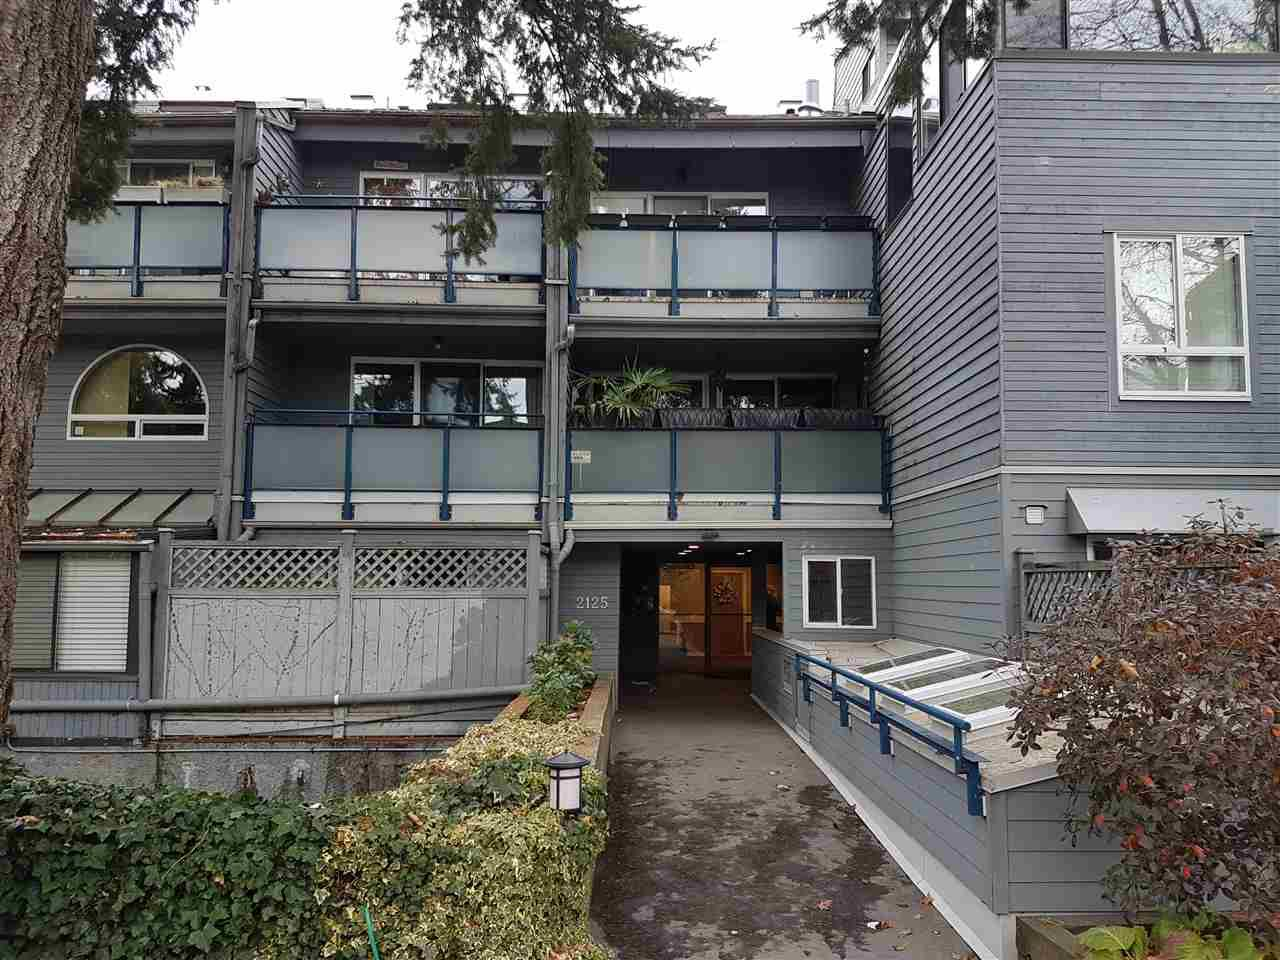 Main Photo: 203 2125 YORK Avenue in Vancouver: Kitsilano Condo for sale (Vancouver West)  : MLS®# R2224246